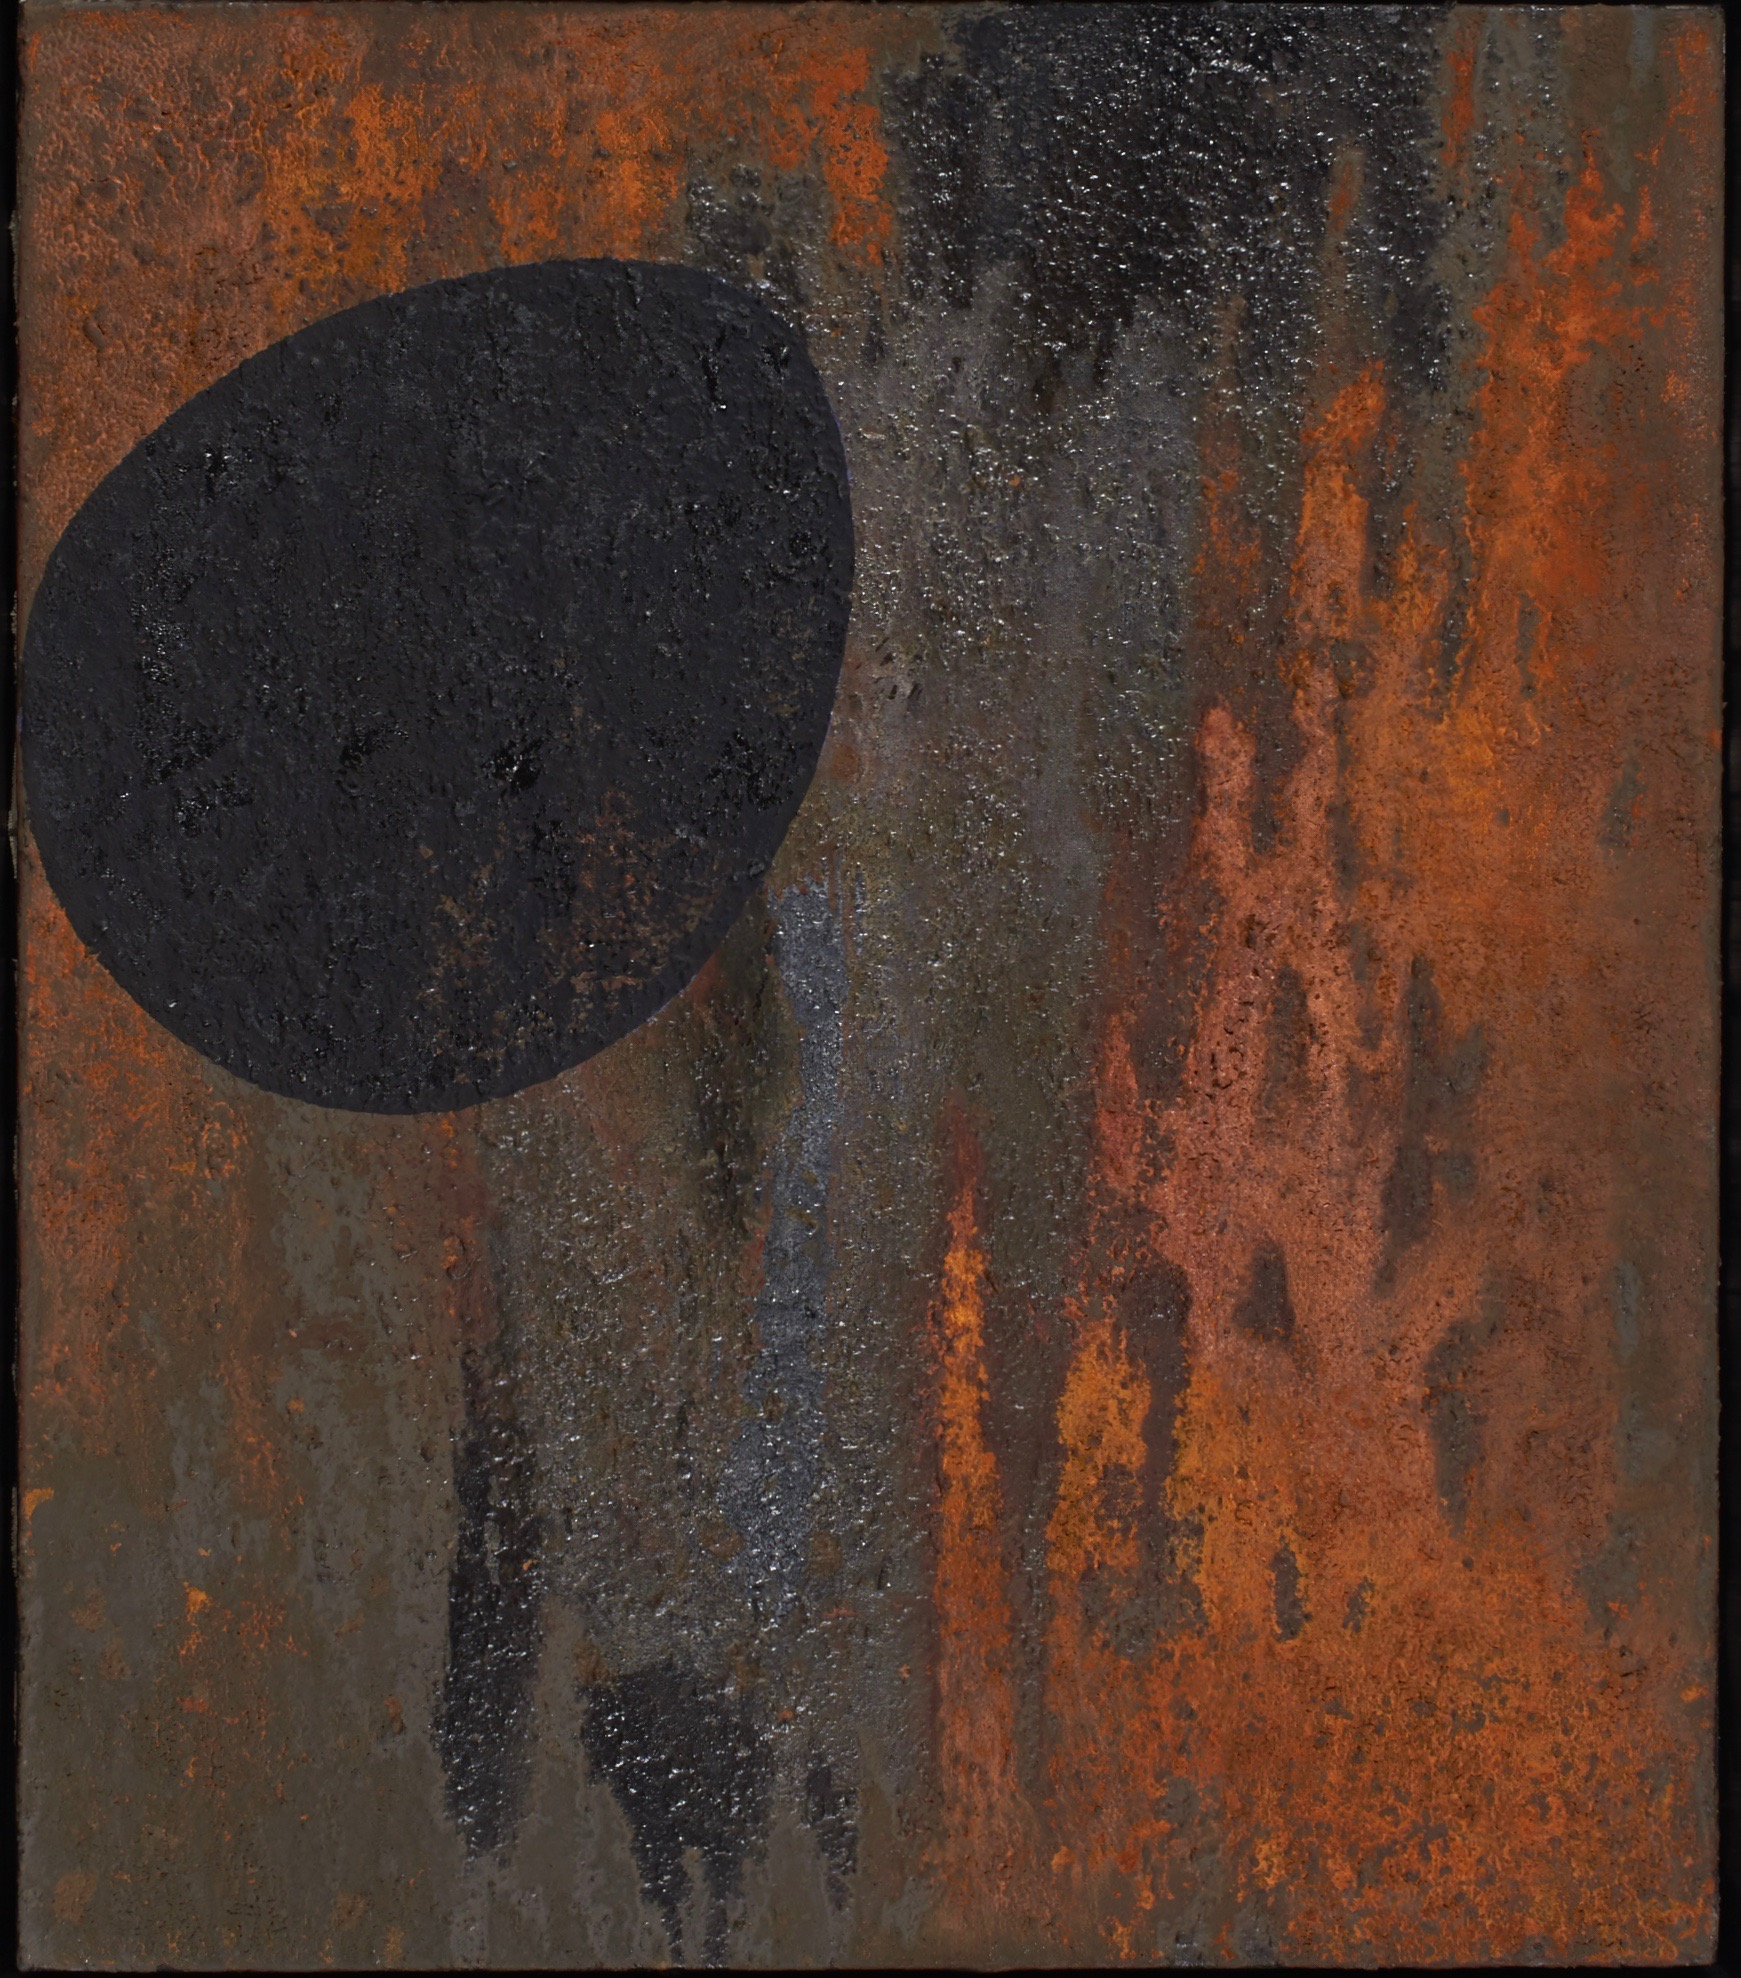 """Untitled, 1988.  Iron oxide and acrylic on canvas.  26 x 30"""""""